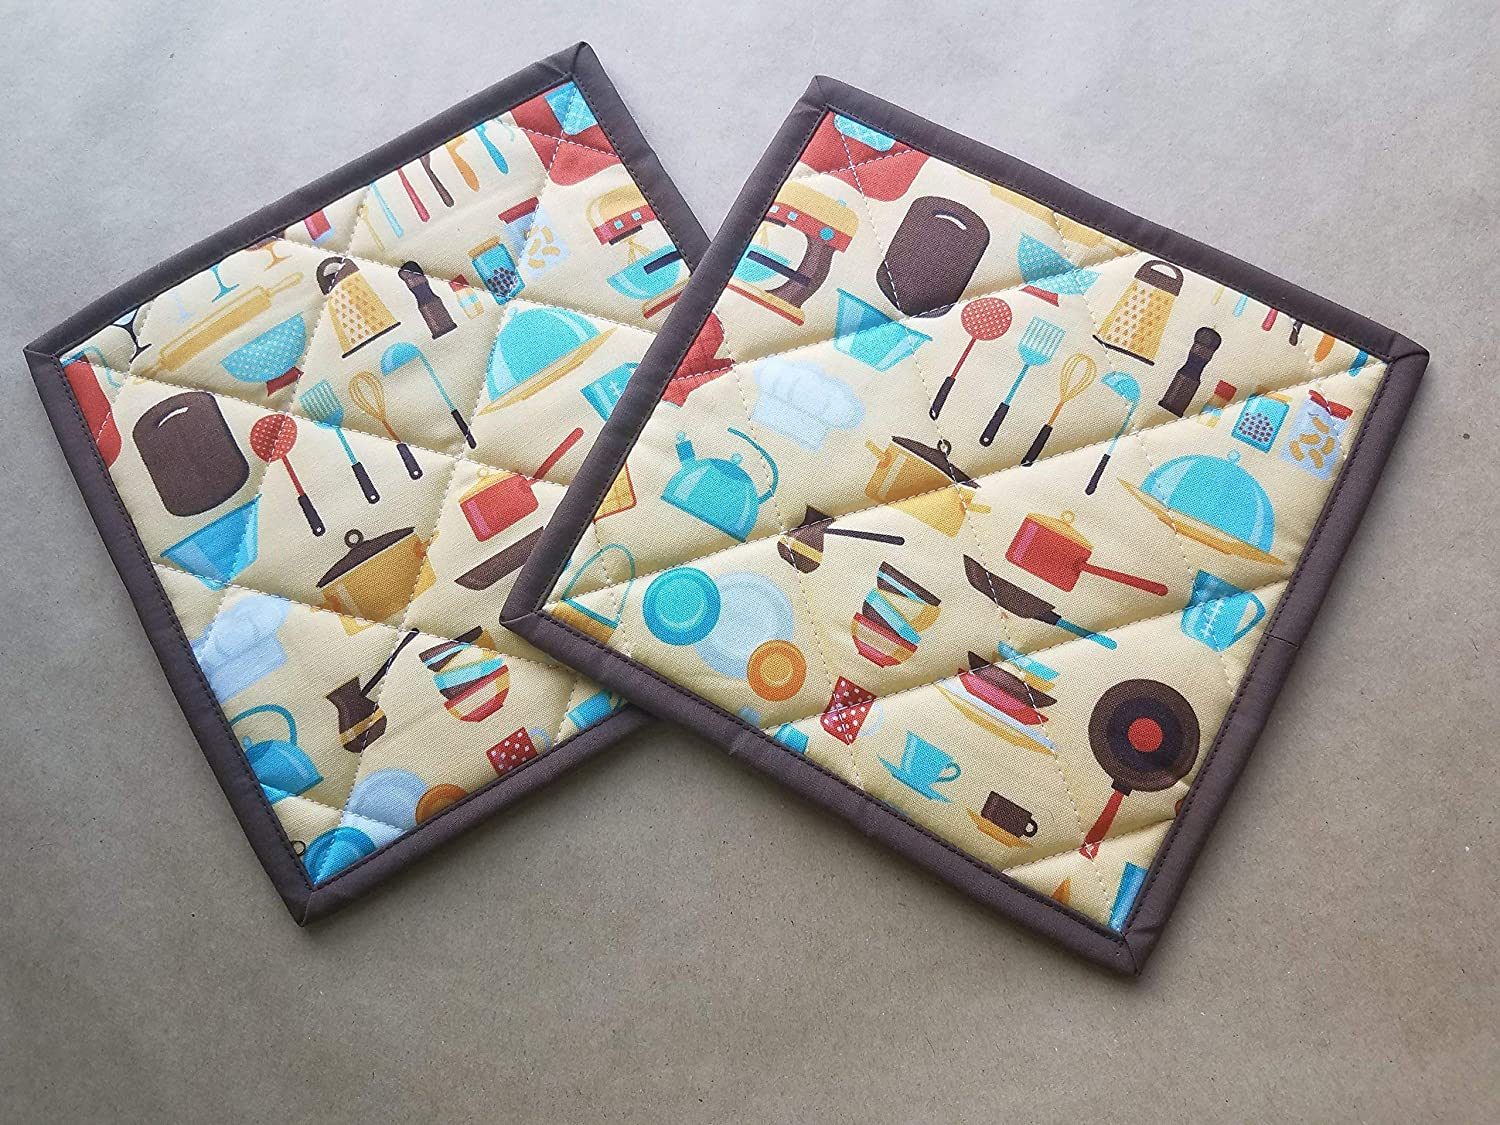 Retro Inspired Kitchen Themed Potholders Set of 2, Quilted Trivets, Hot Pads, MCM Gift Ideas, Vintage Kitchen Decor, Aqua, Buttercup, Rust, Brown, Retro Gift Ideas, Retro Kitchen Lover Gifts